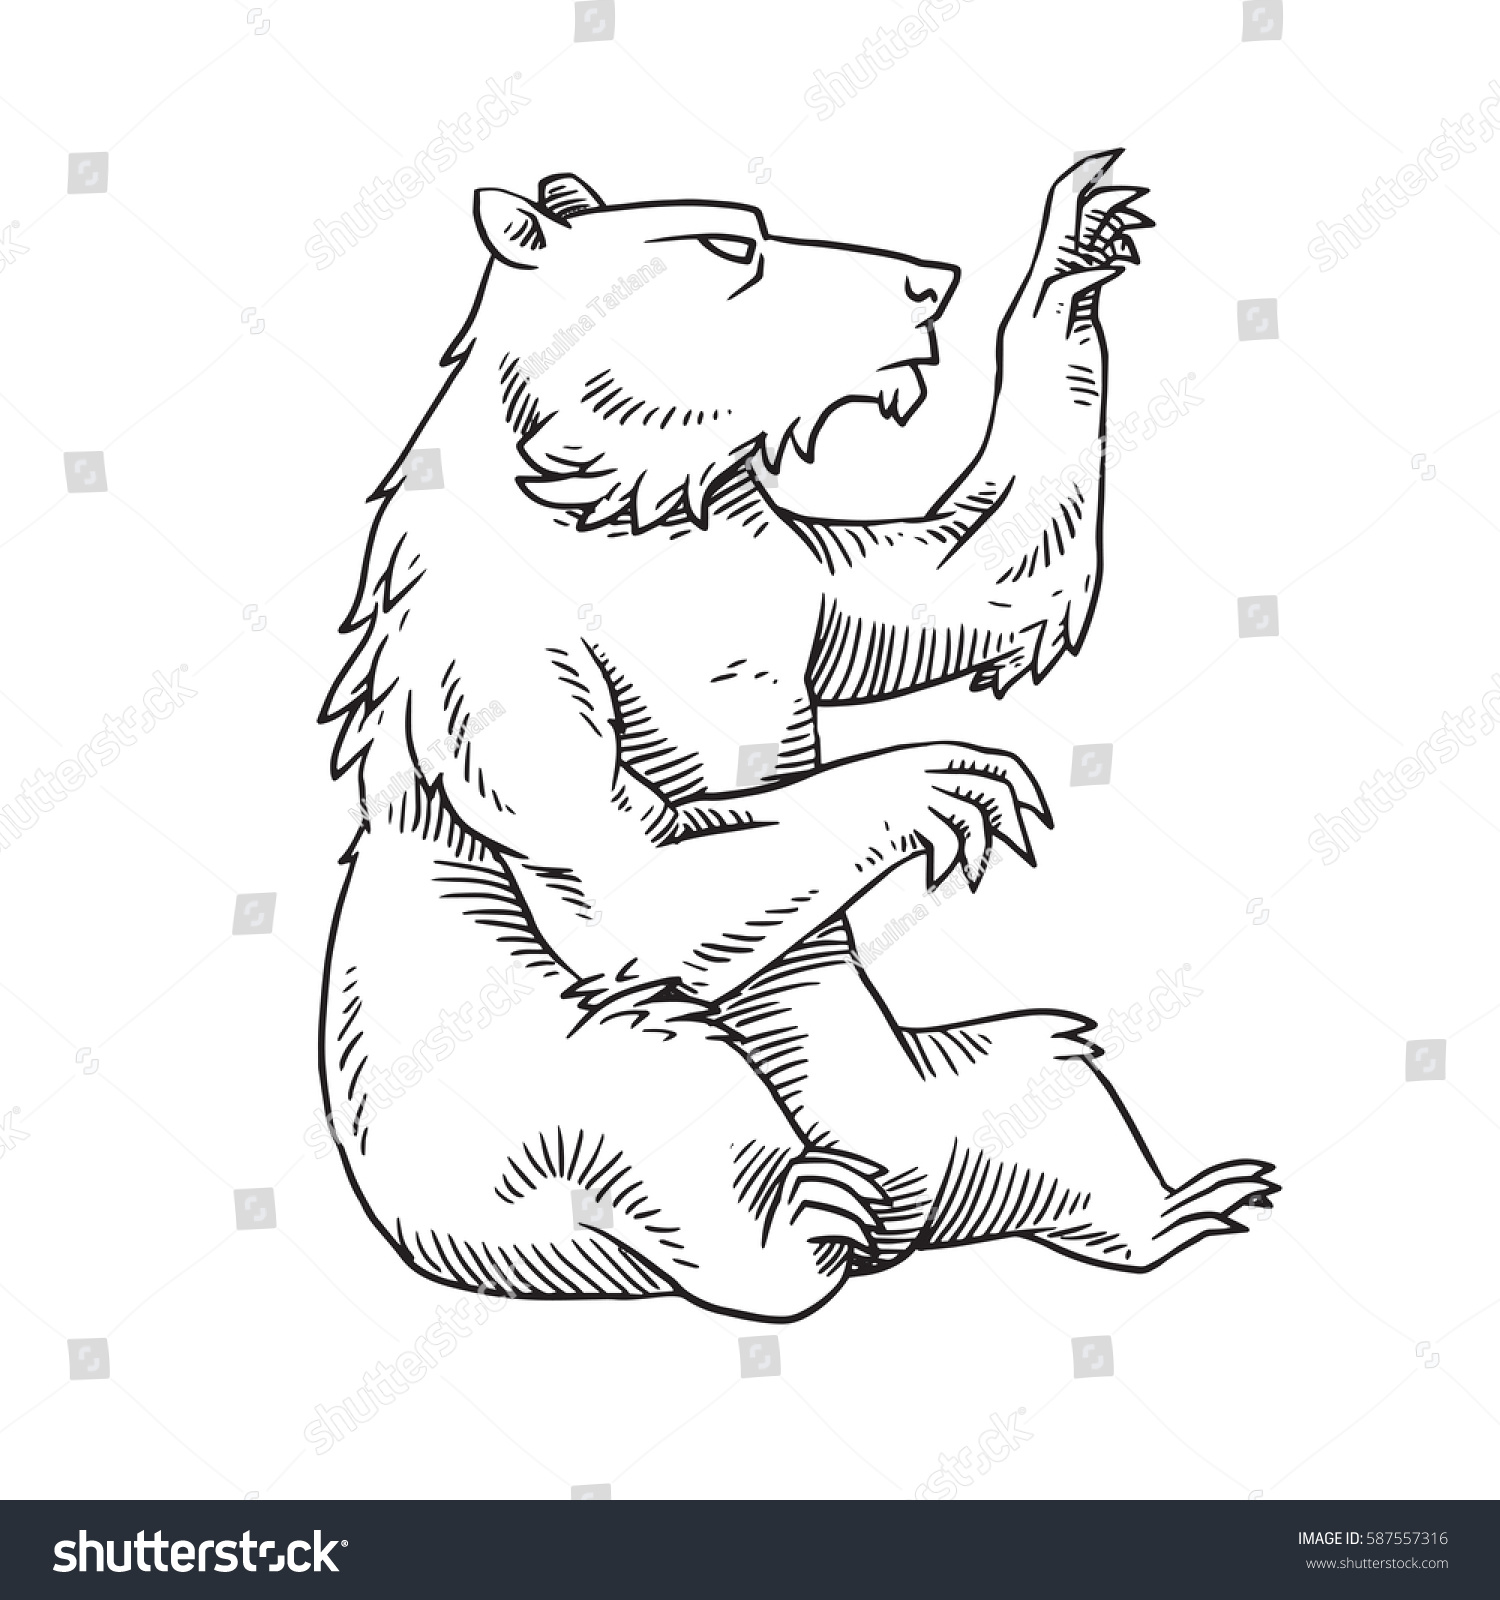 How to breed heraldic dragon - Vector Image Of A Heraldic Bear Sitting And Looking To The Right On A White Background